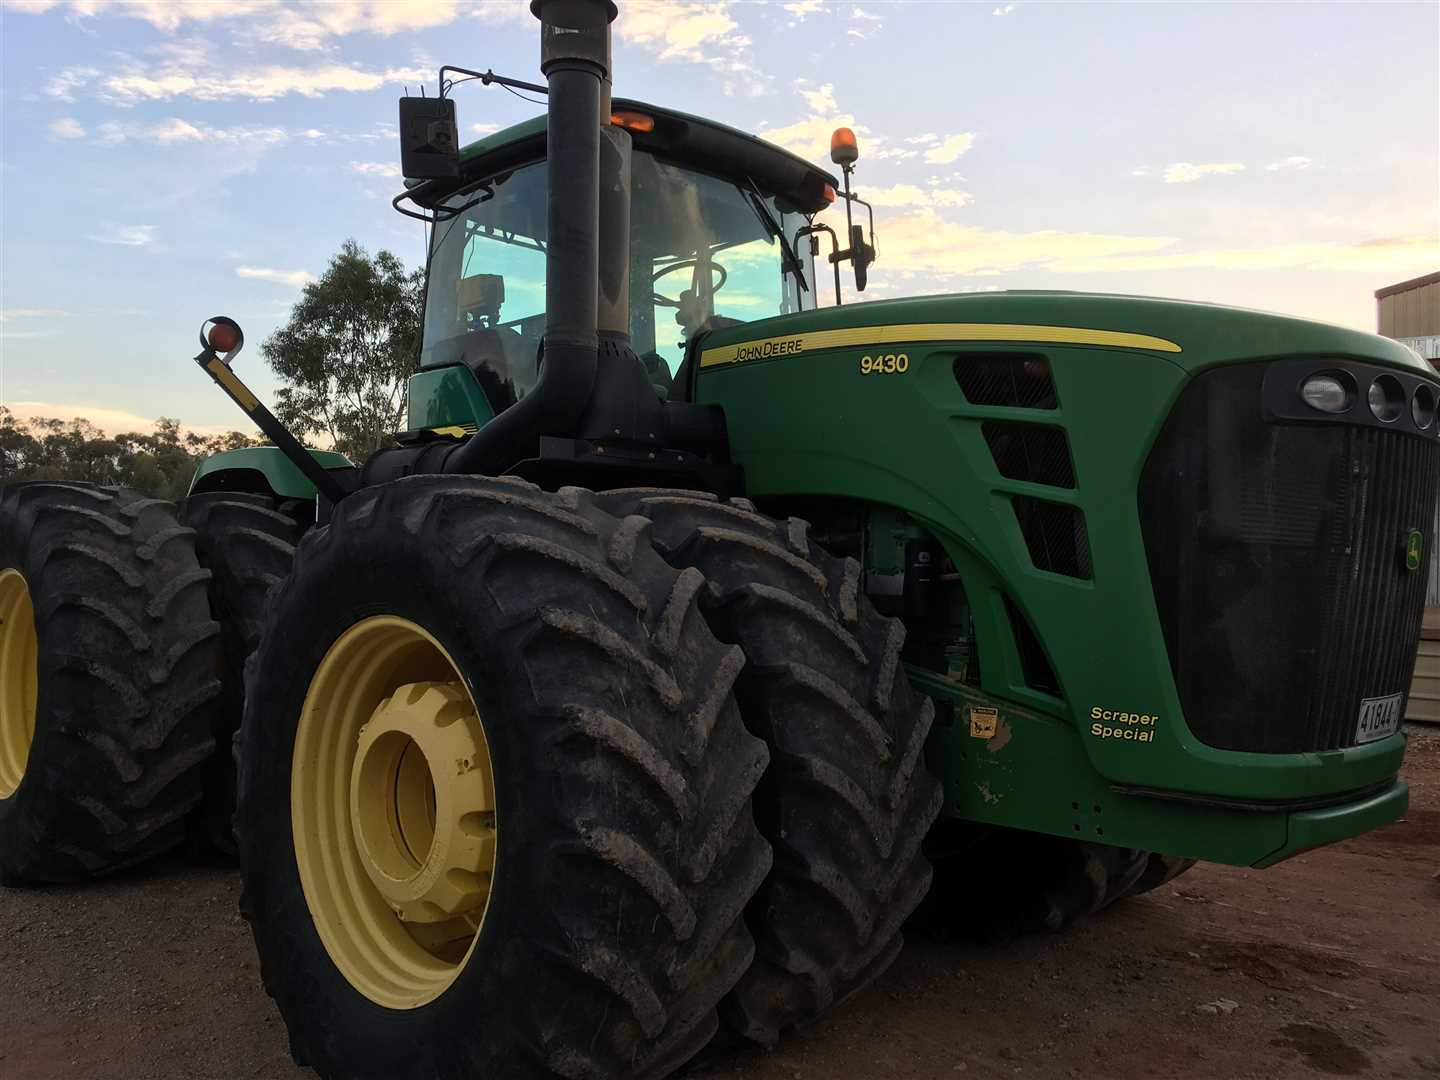 JD 9430 4WD articulated tractor